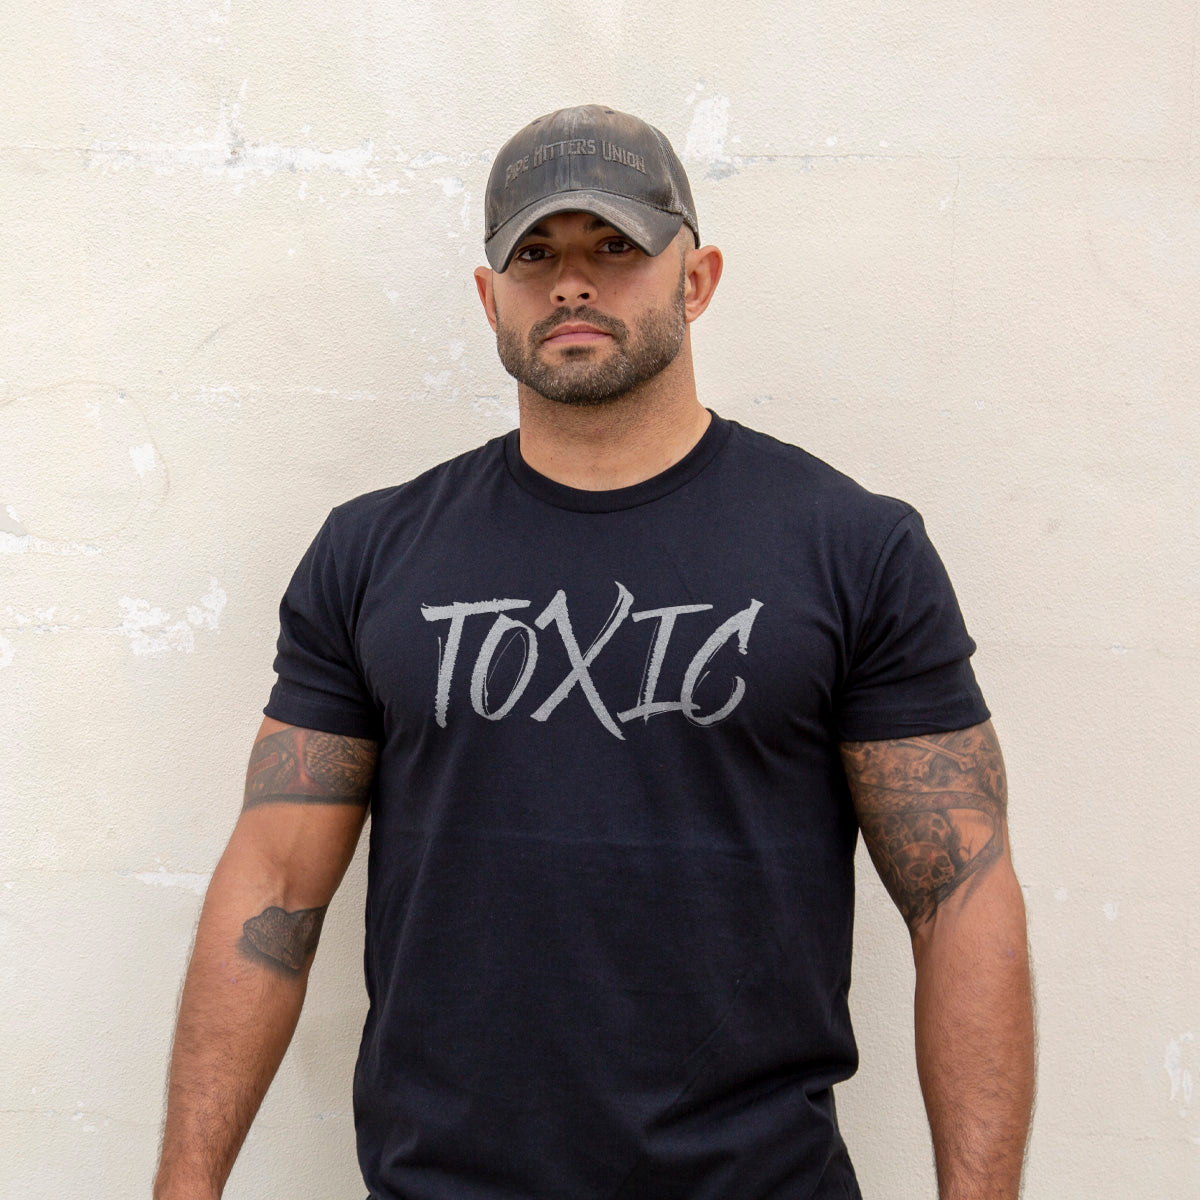 Toxic -  - T-Shirts - Pipe Hitters Union